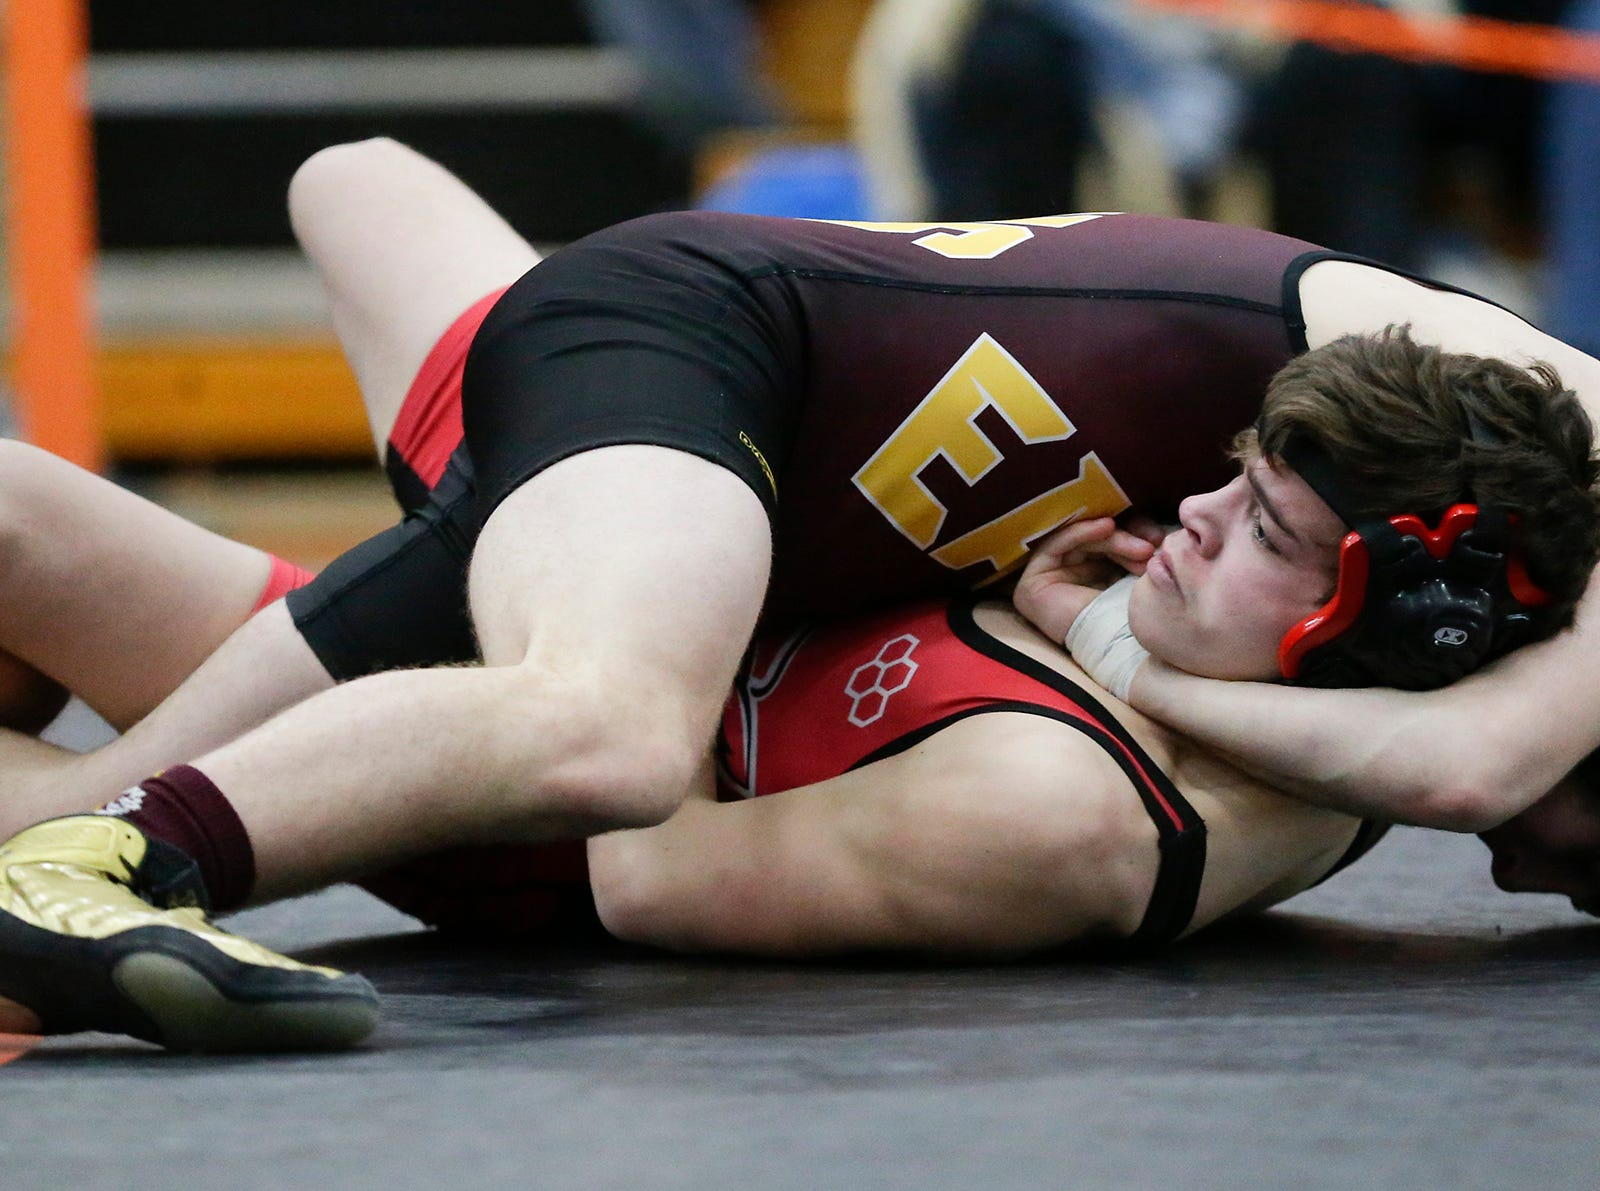 Austin Lewis of Neenah High School wrestles Cayden Henschel of West Bend West High School in the 132 pound weight class during the WIAA sectionals Saturday, February 16, 2019 in Hartford, Wis. Henschel won with a pin. Doug Raflik/USA TODAY NETWORK-Wisconsin